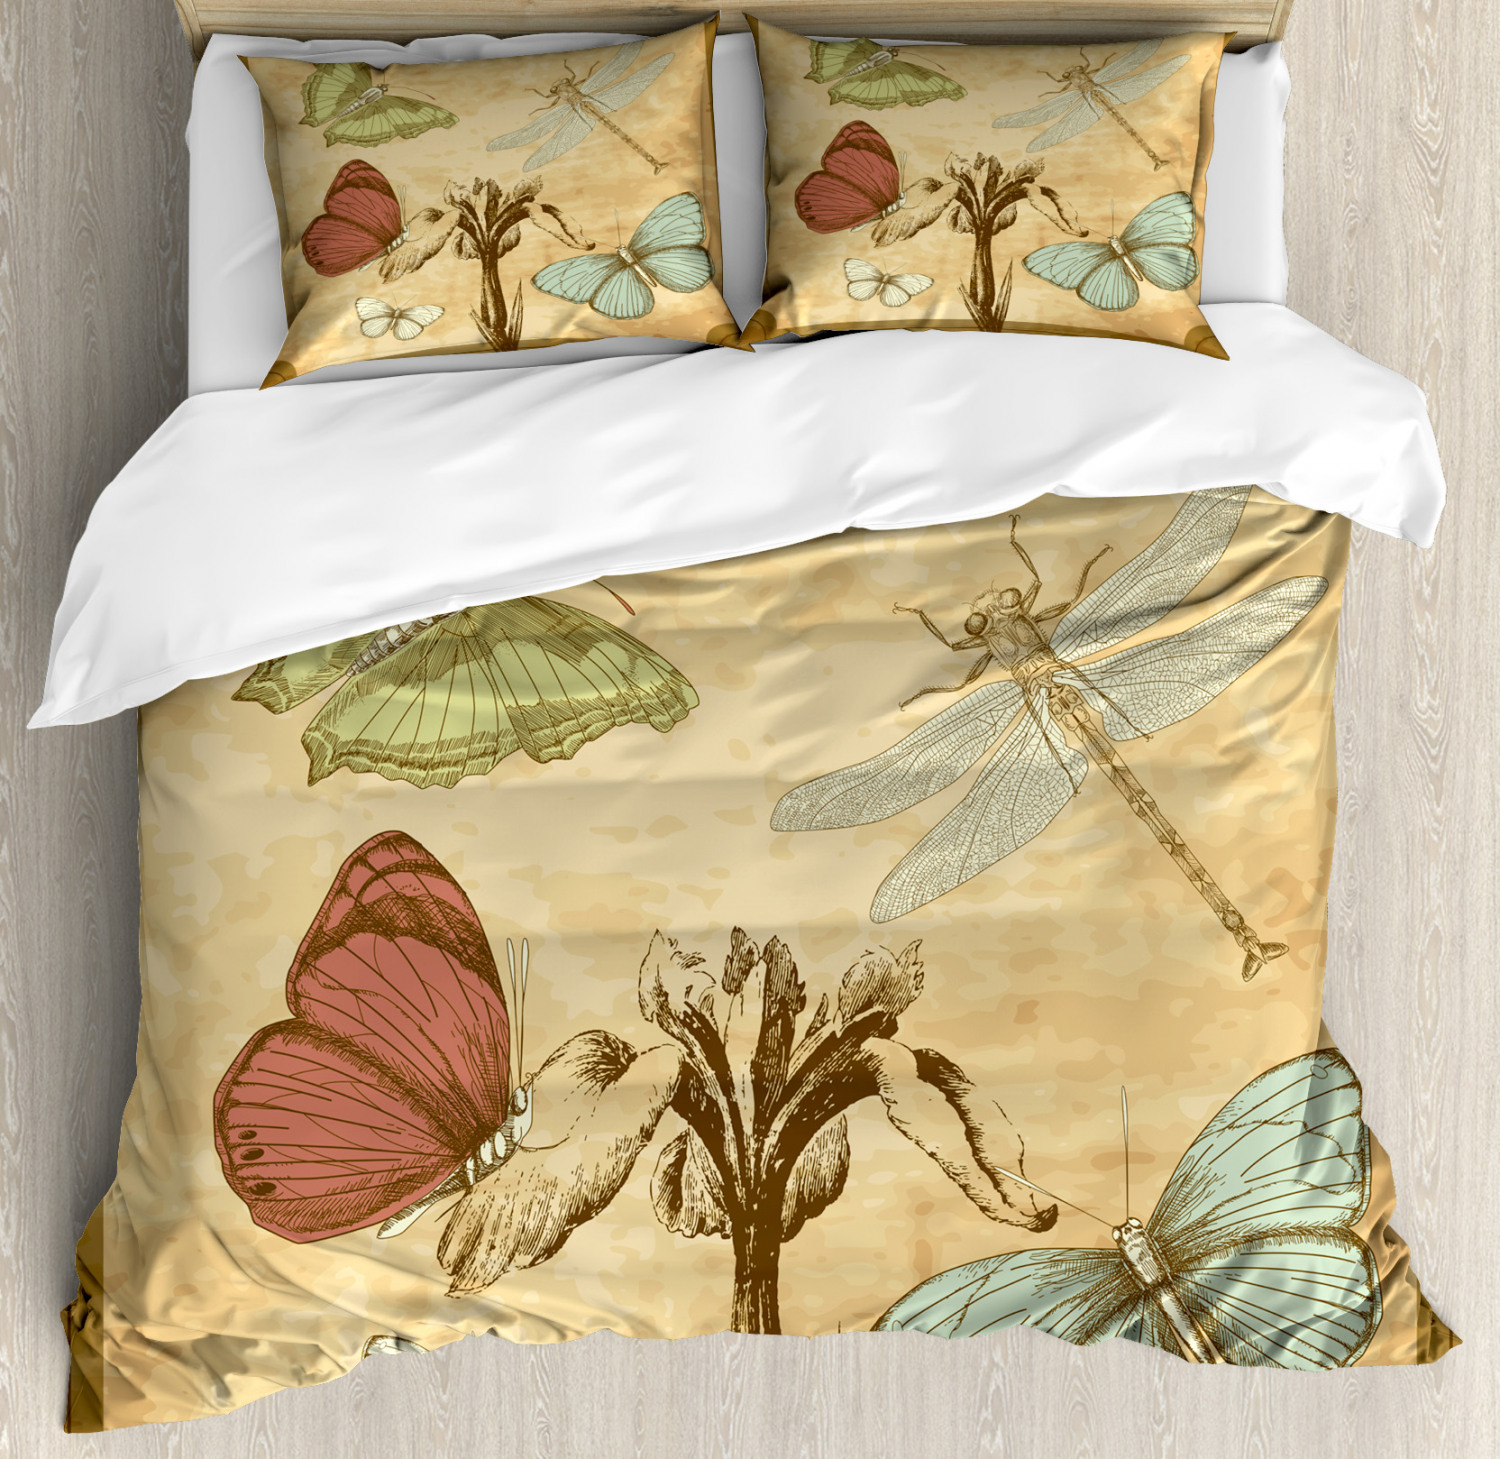 Dragonfly Duvet Cover Set with Pillow Shams Retro Butterflies Art Print